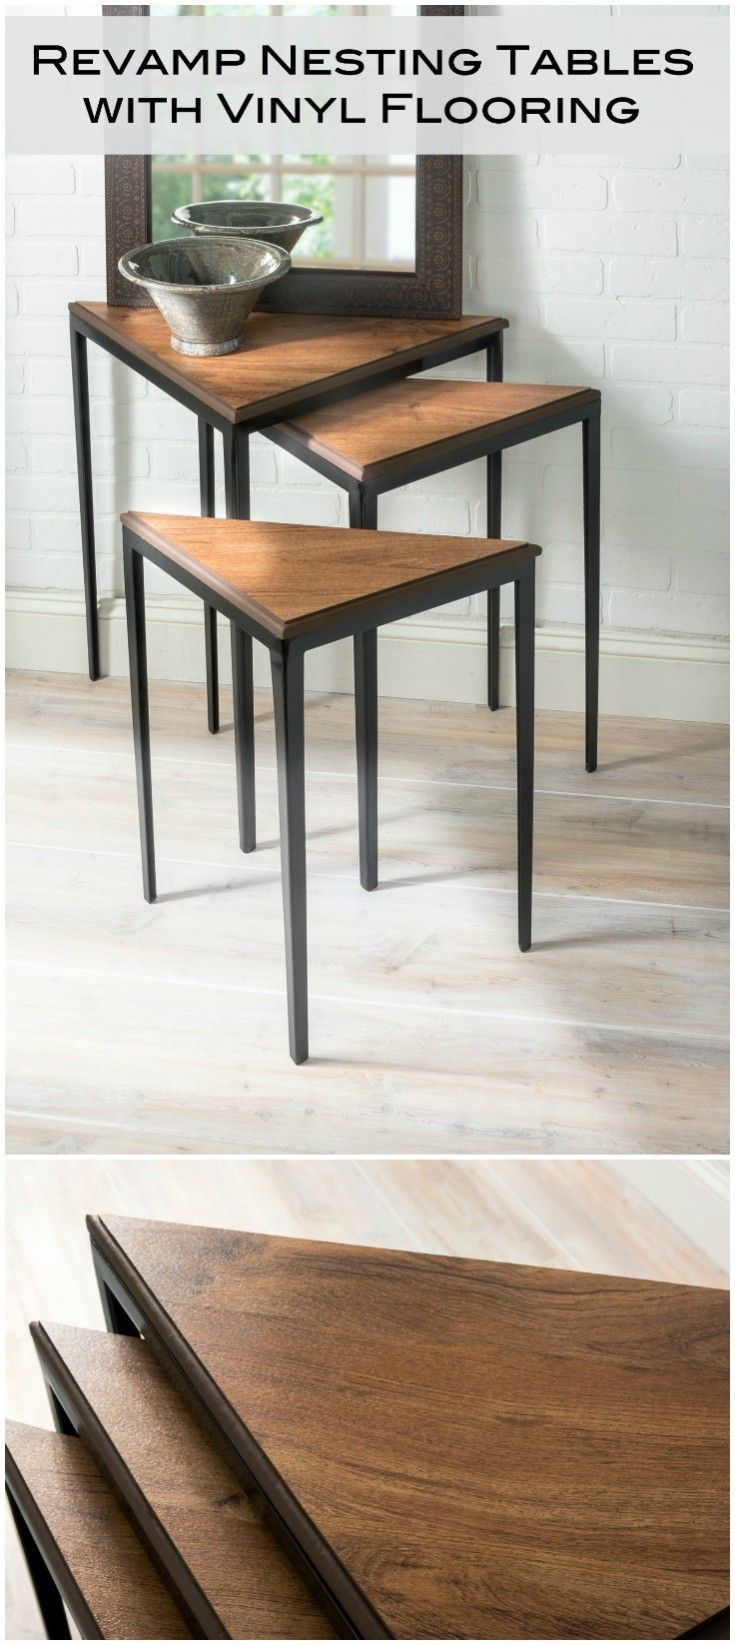 Cost Effective Flooring revamp nesting tables with vinyl flooring | vinyls, we and nesting